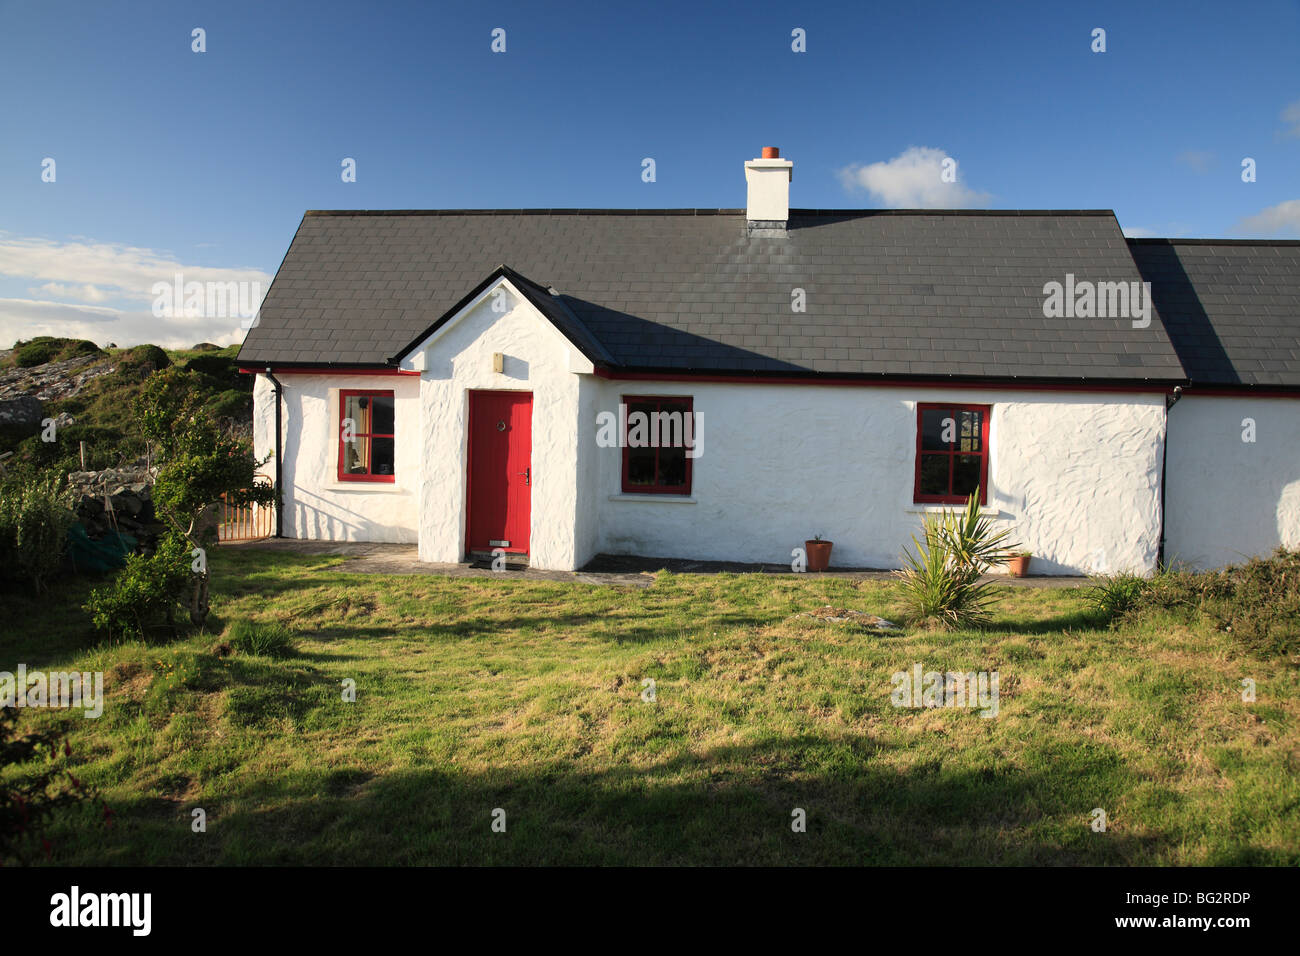 summer cottage with red door and windows in Ballyconneely near Roundstone, Connemara, Ireland - Stock Image